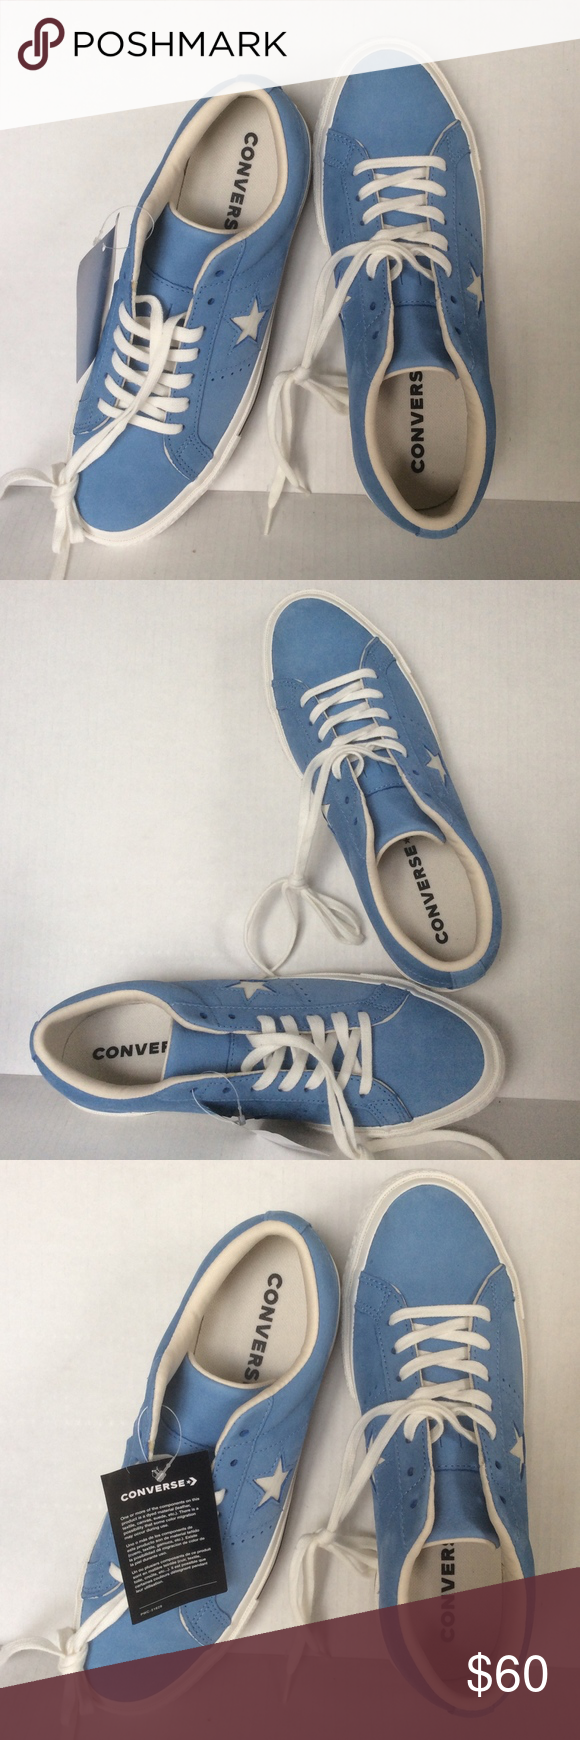 Reducción Salida Fuera  Converse one star ox nwt (With images)   Converse one star, Classic  sneakers, Converse